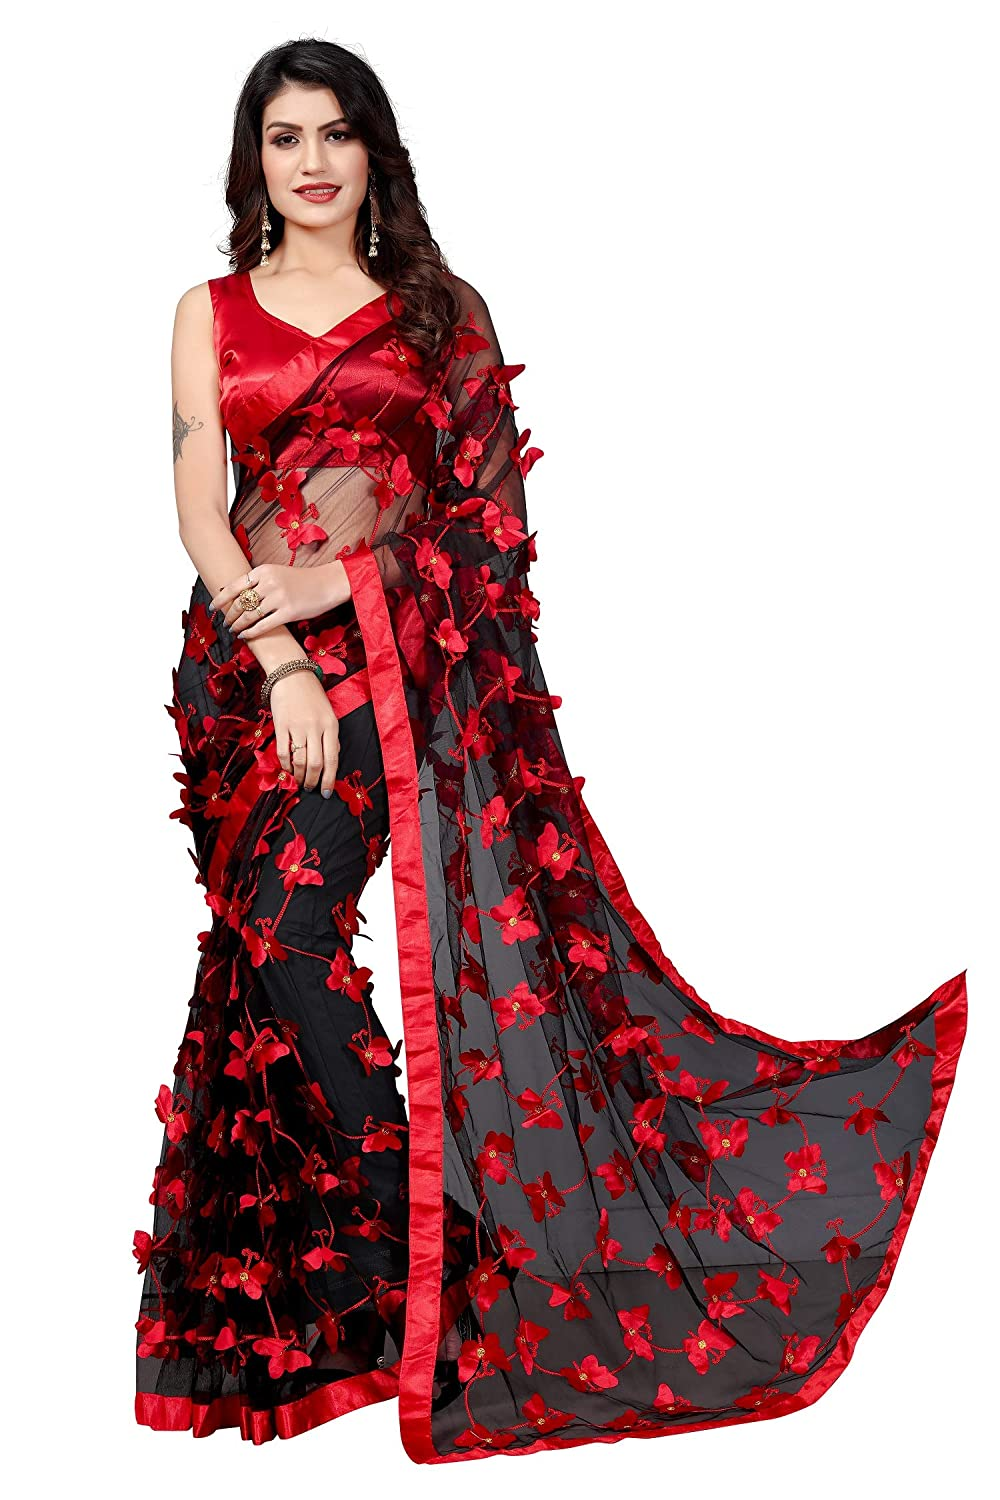 Buy JULEE Women's Net Saree with Blouse Piece (Black) at Amazon.in